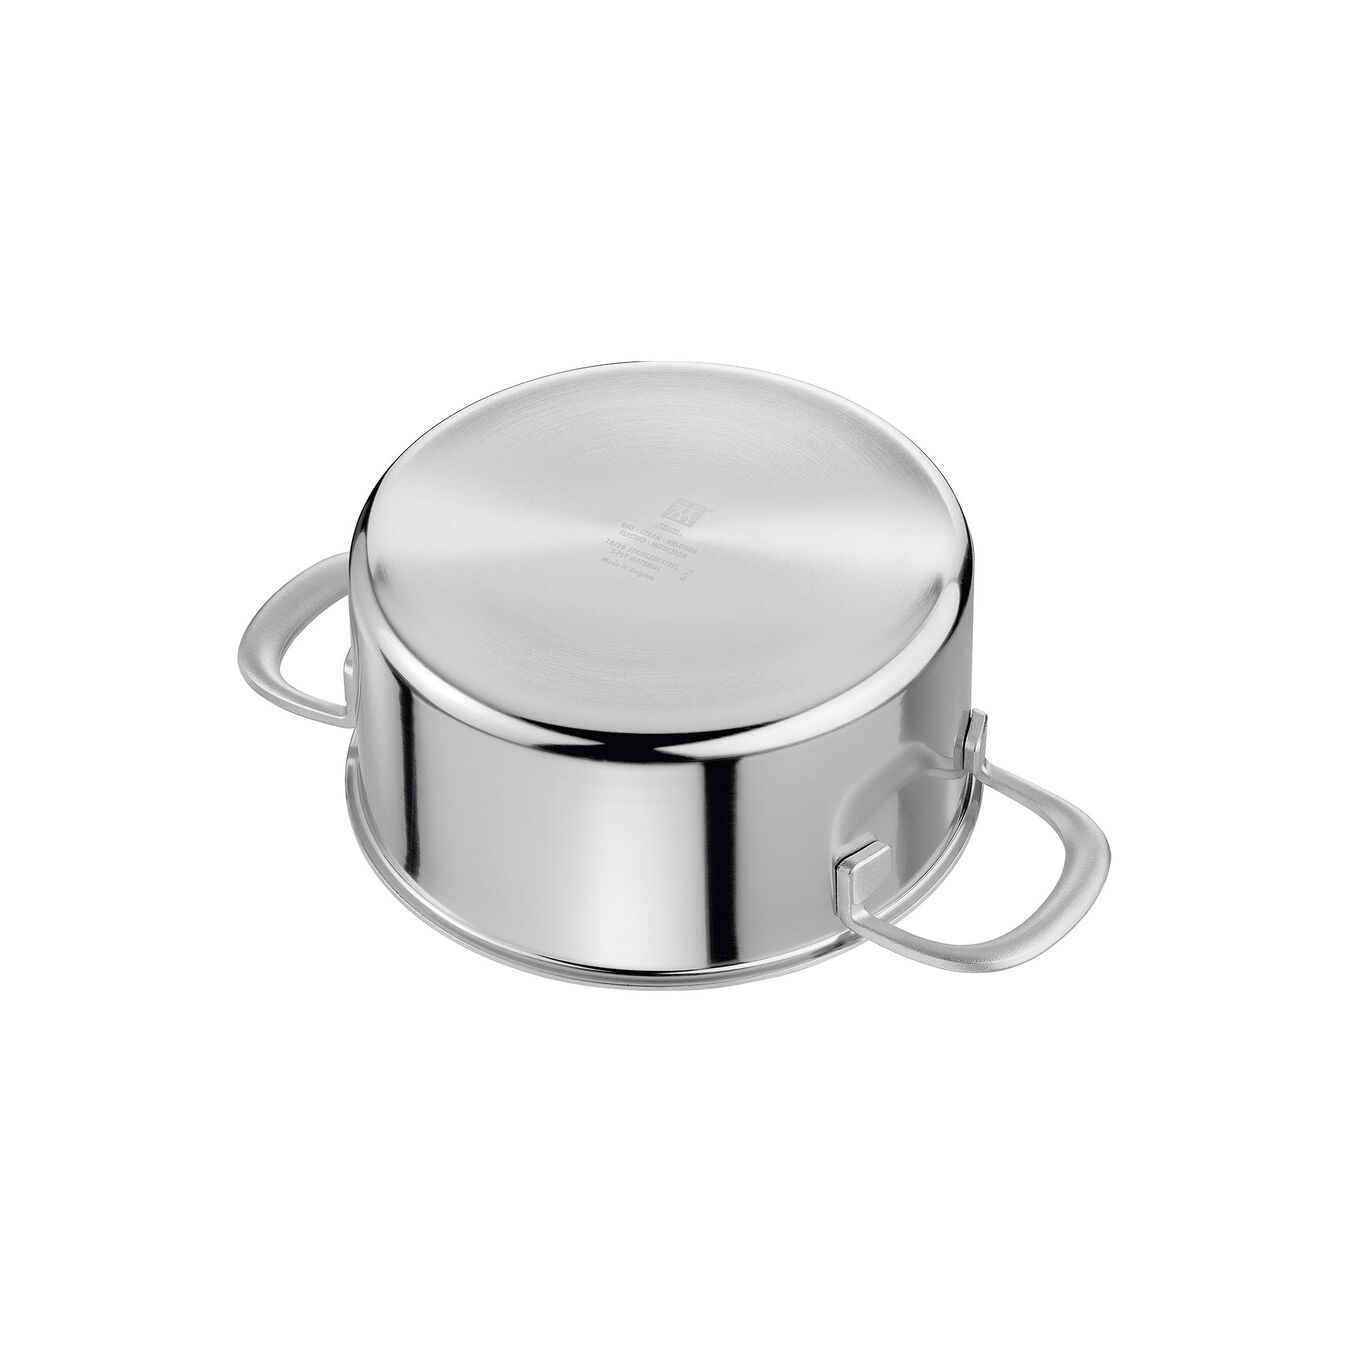 1,5 l 18/10 Stainless Steel Casserole,,large 5